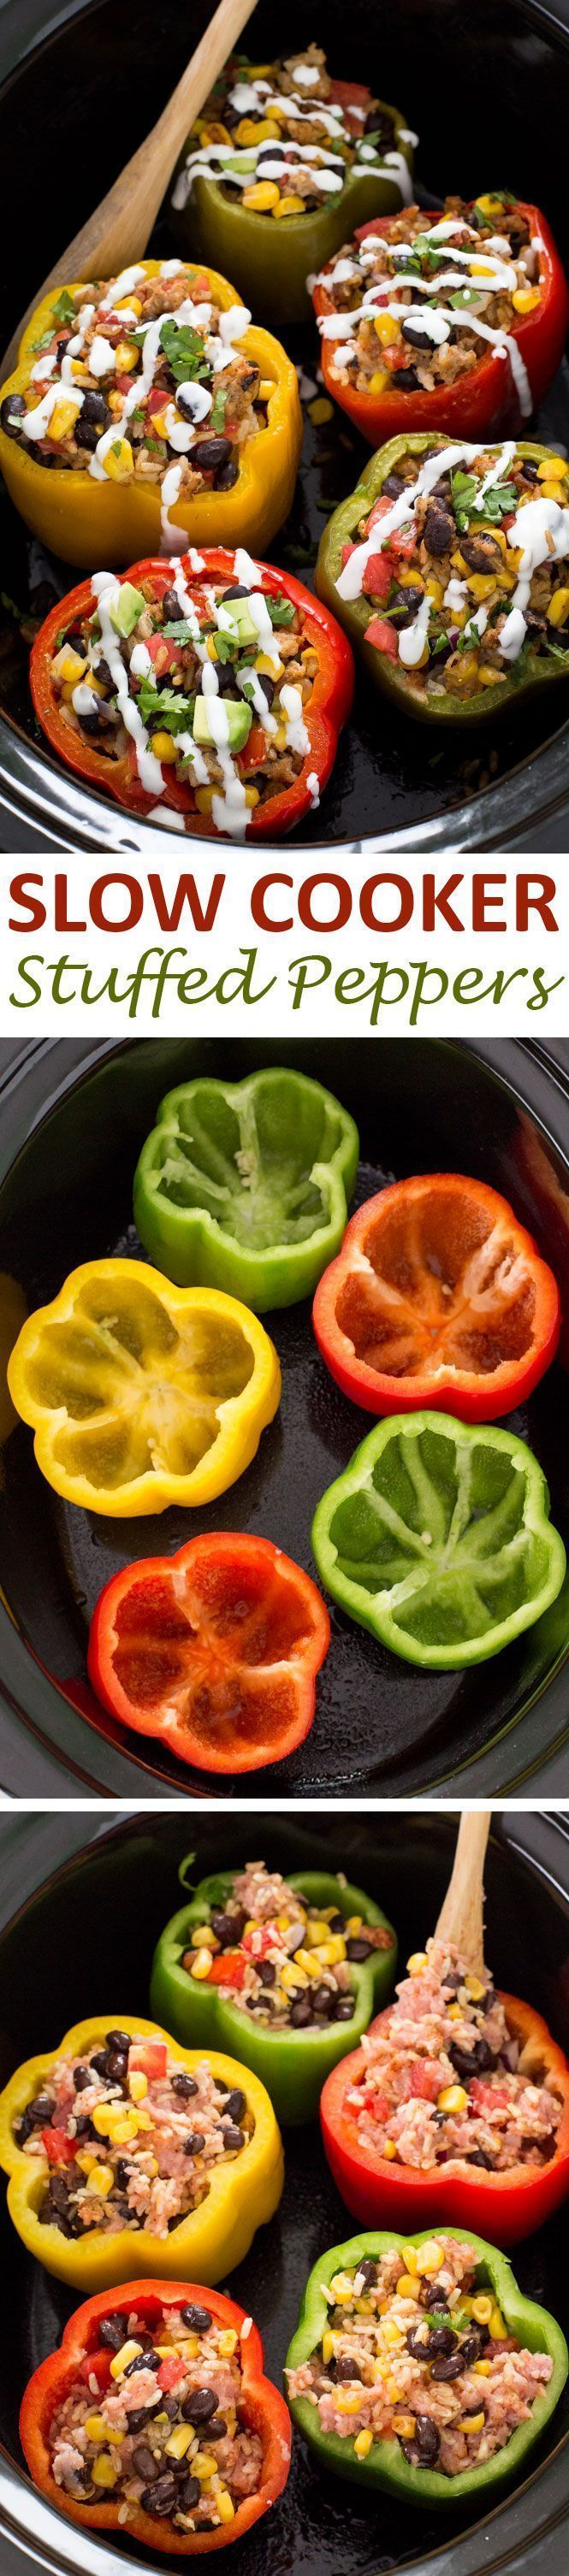 Cooker Stuffed Peppers Mexican Slow Cooker Stuffed Peppers. Loaded with enchilada sauce, black beans and corn. A quick, easy and satisfying meal! | Mexican Slow Cooker Stuffed Peppers. Loaded with enchilada sauce, black beans and corn. A quick, easy and satisfying meal! |